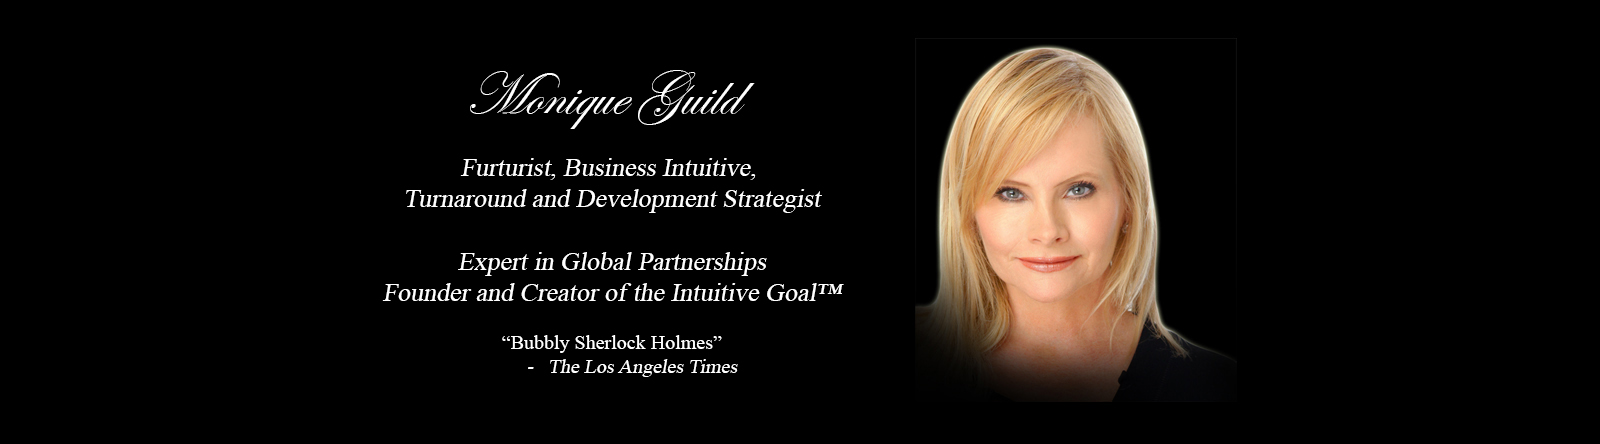 Monique Guild Business Futurist Strategist Business Turnaround Specialist